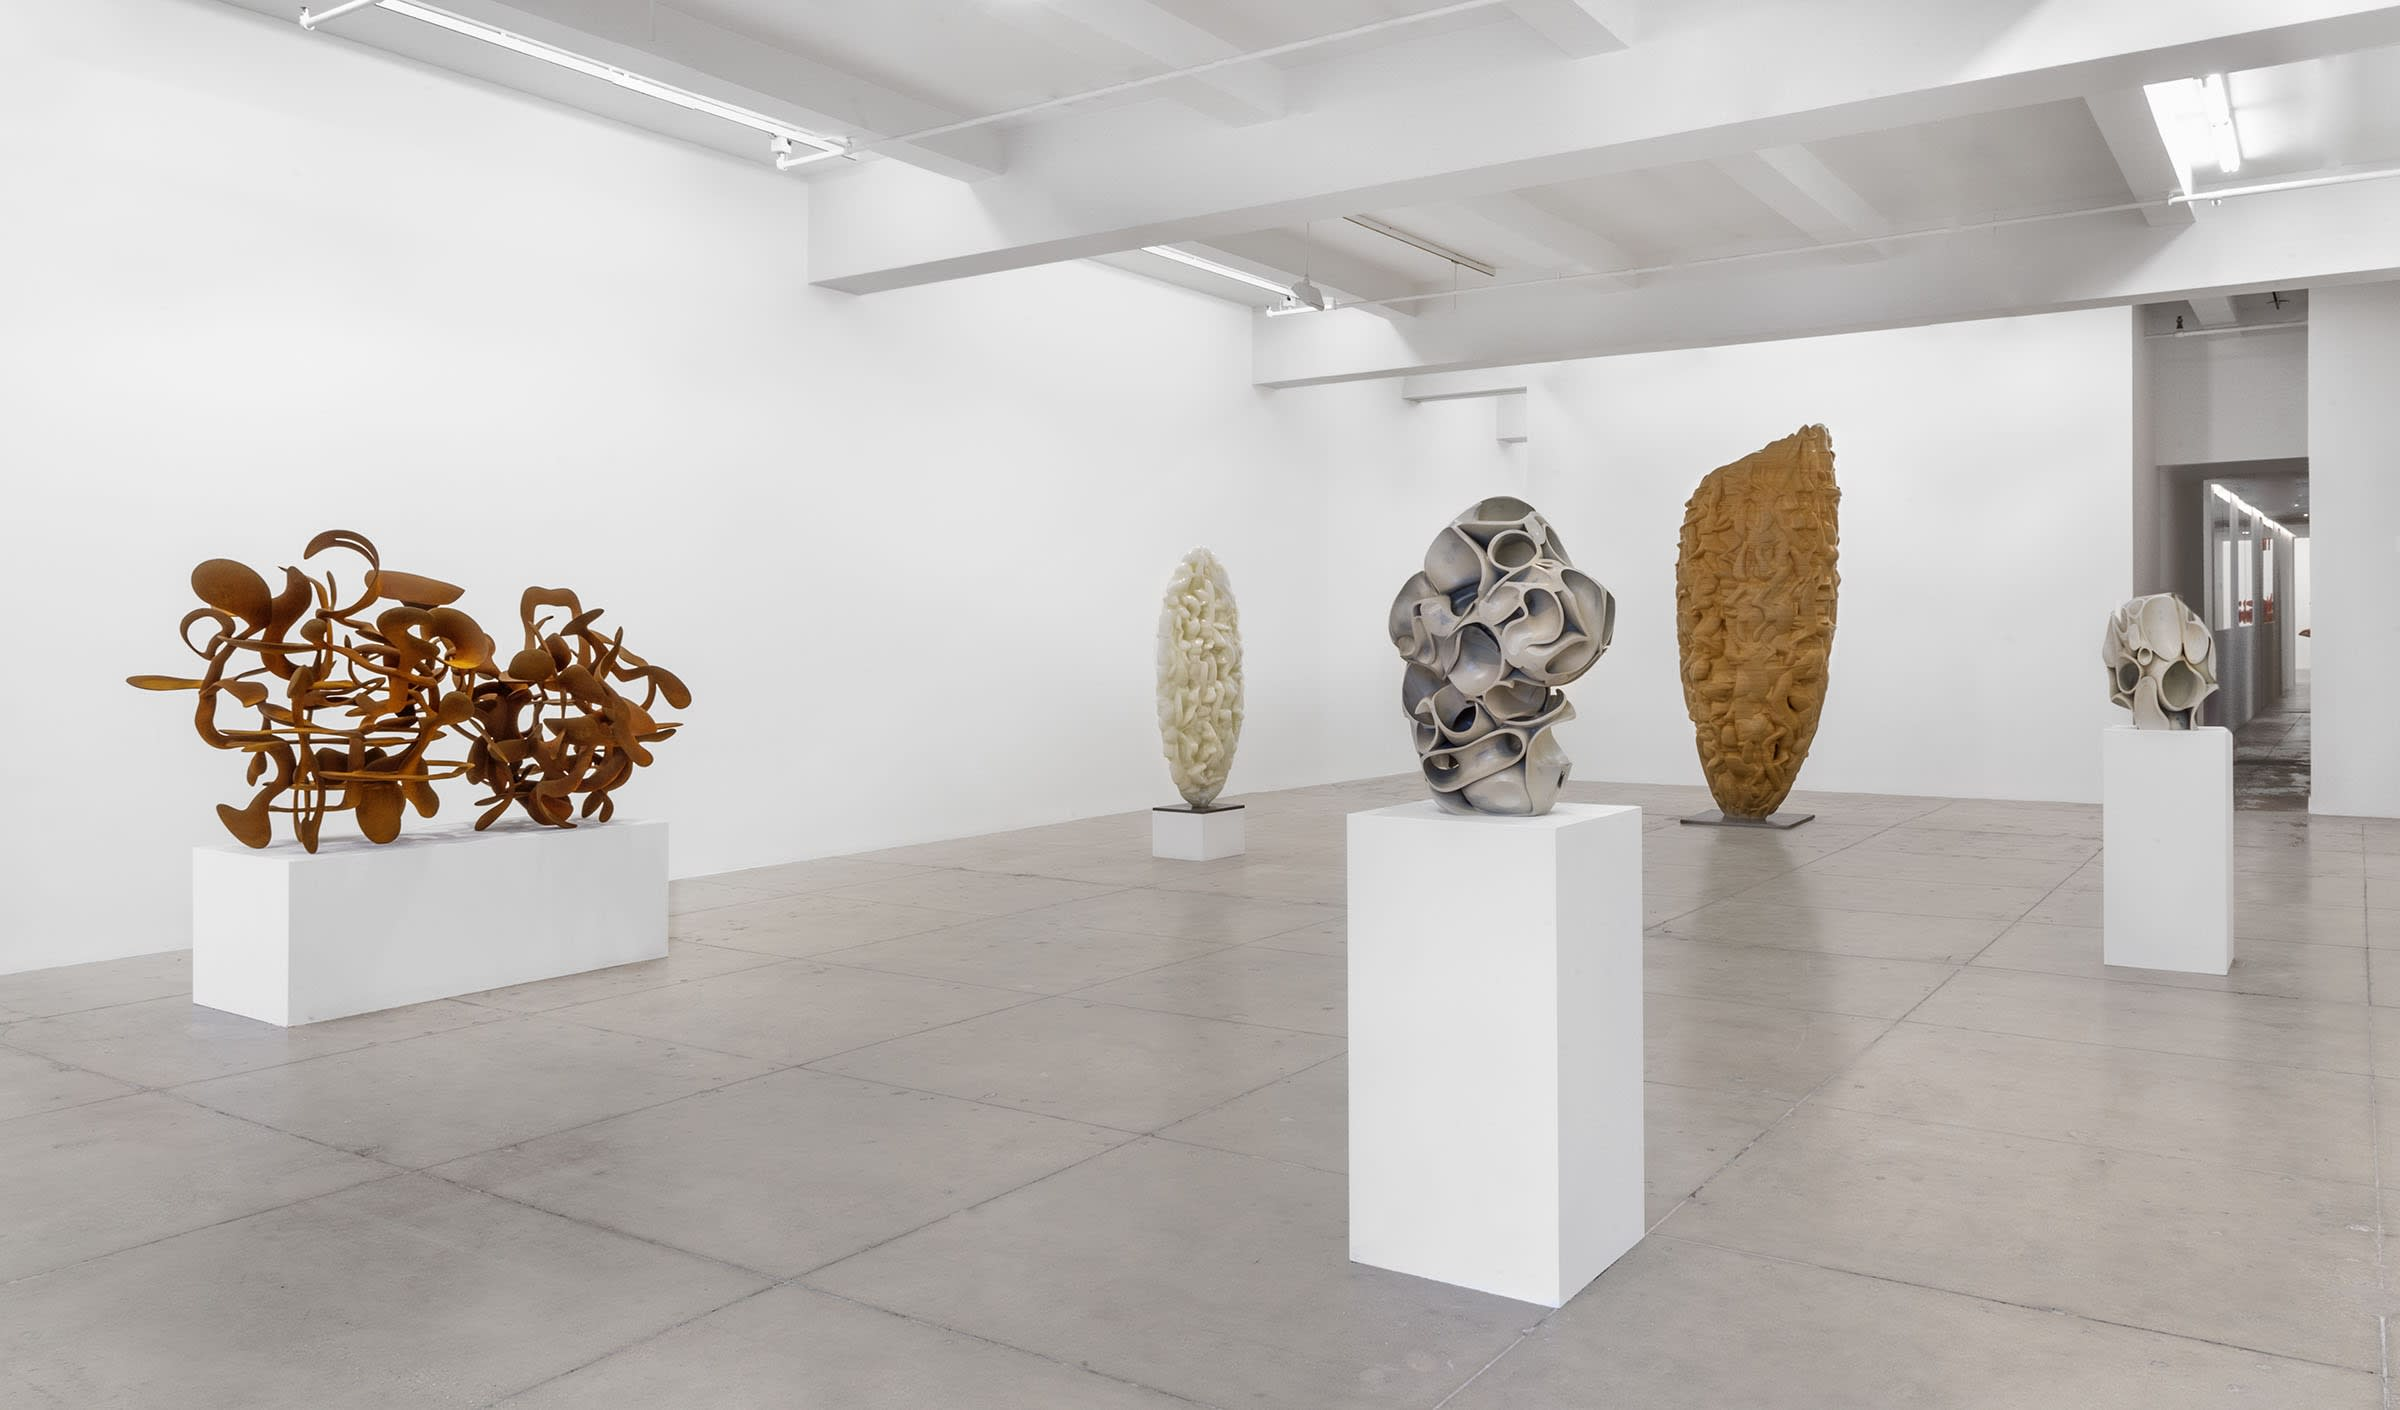 Tony Cragg Recent Sculptures